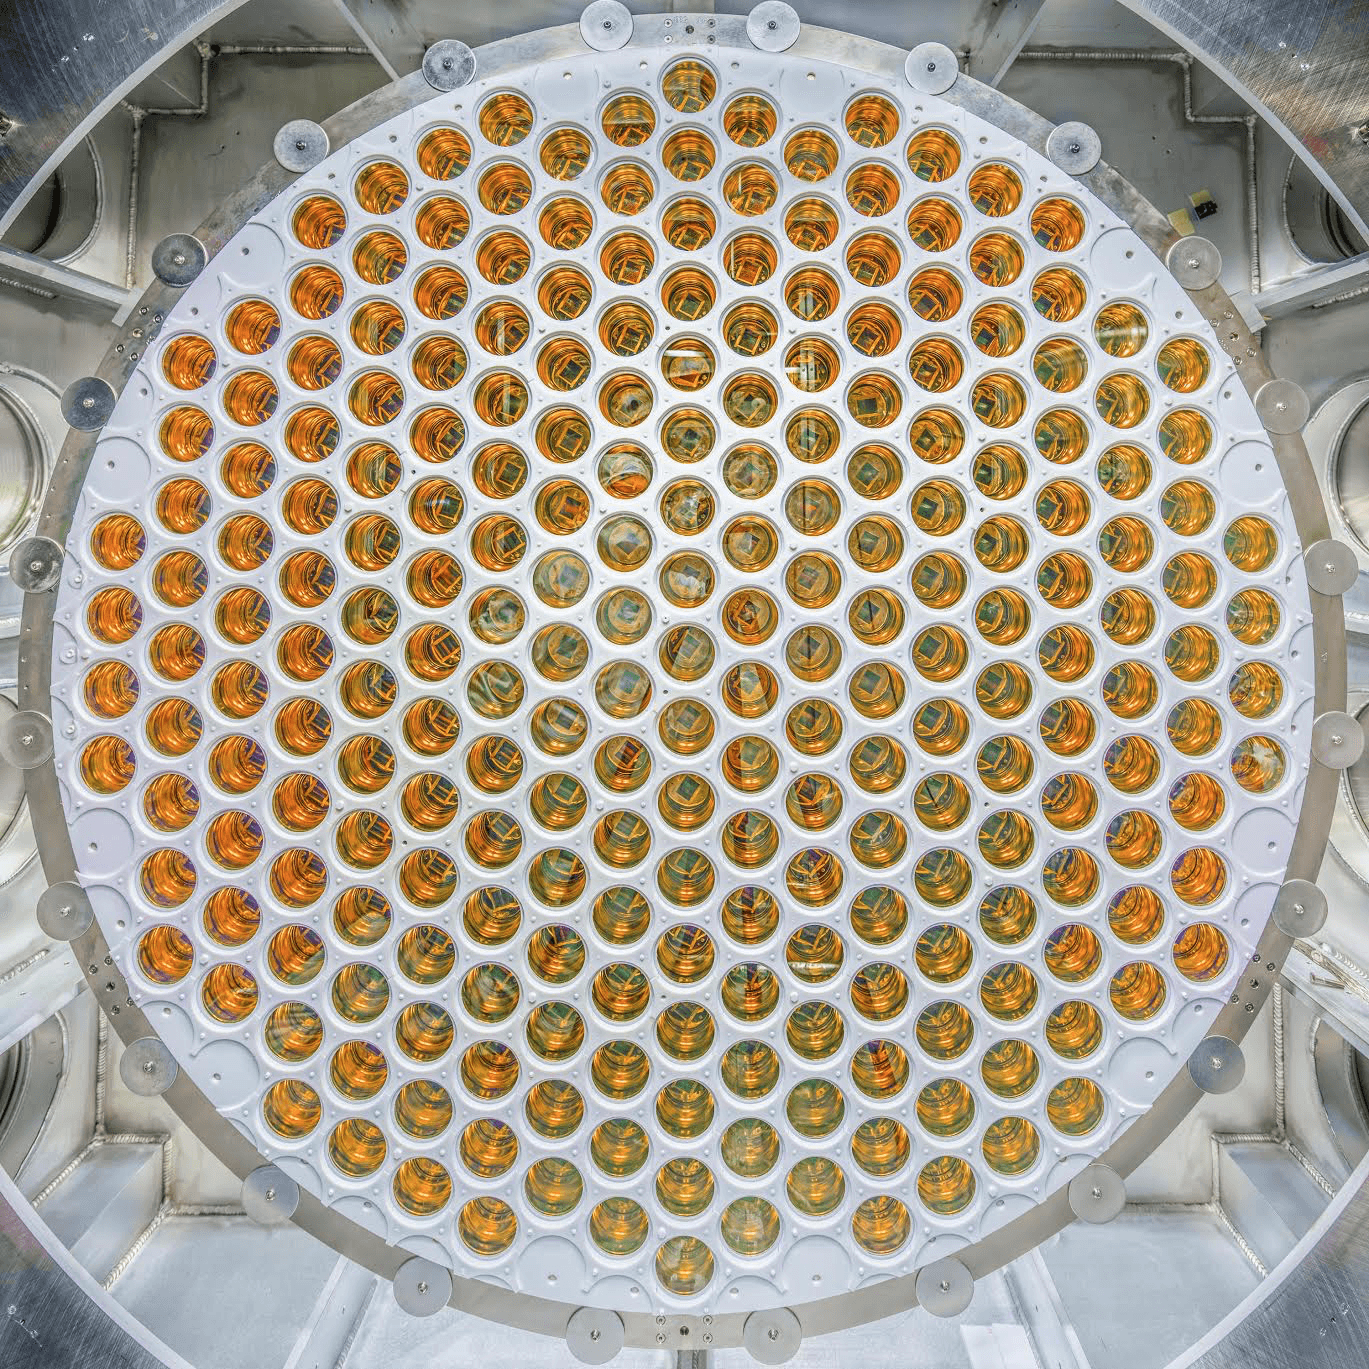 The bottom LZ PMT array with 241 photomultiplier tubes